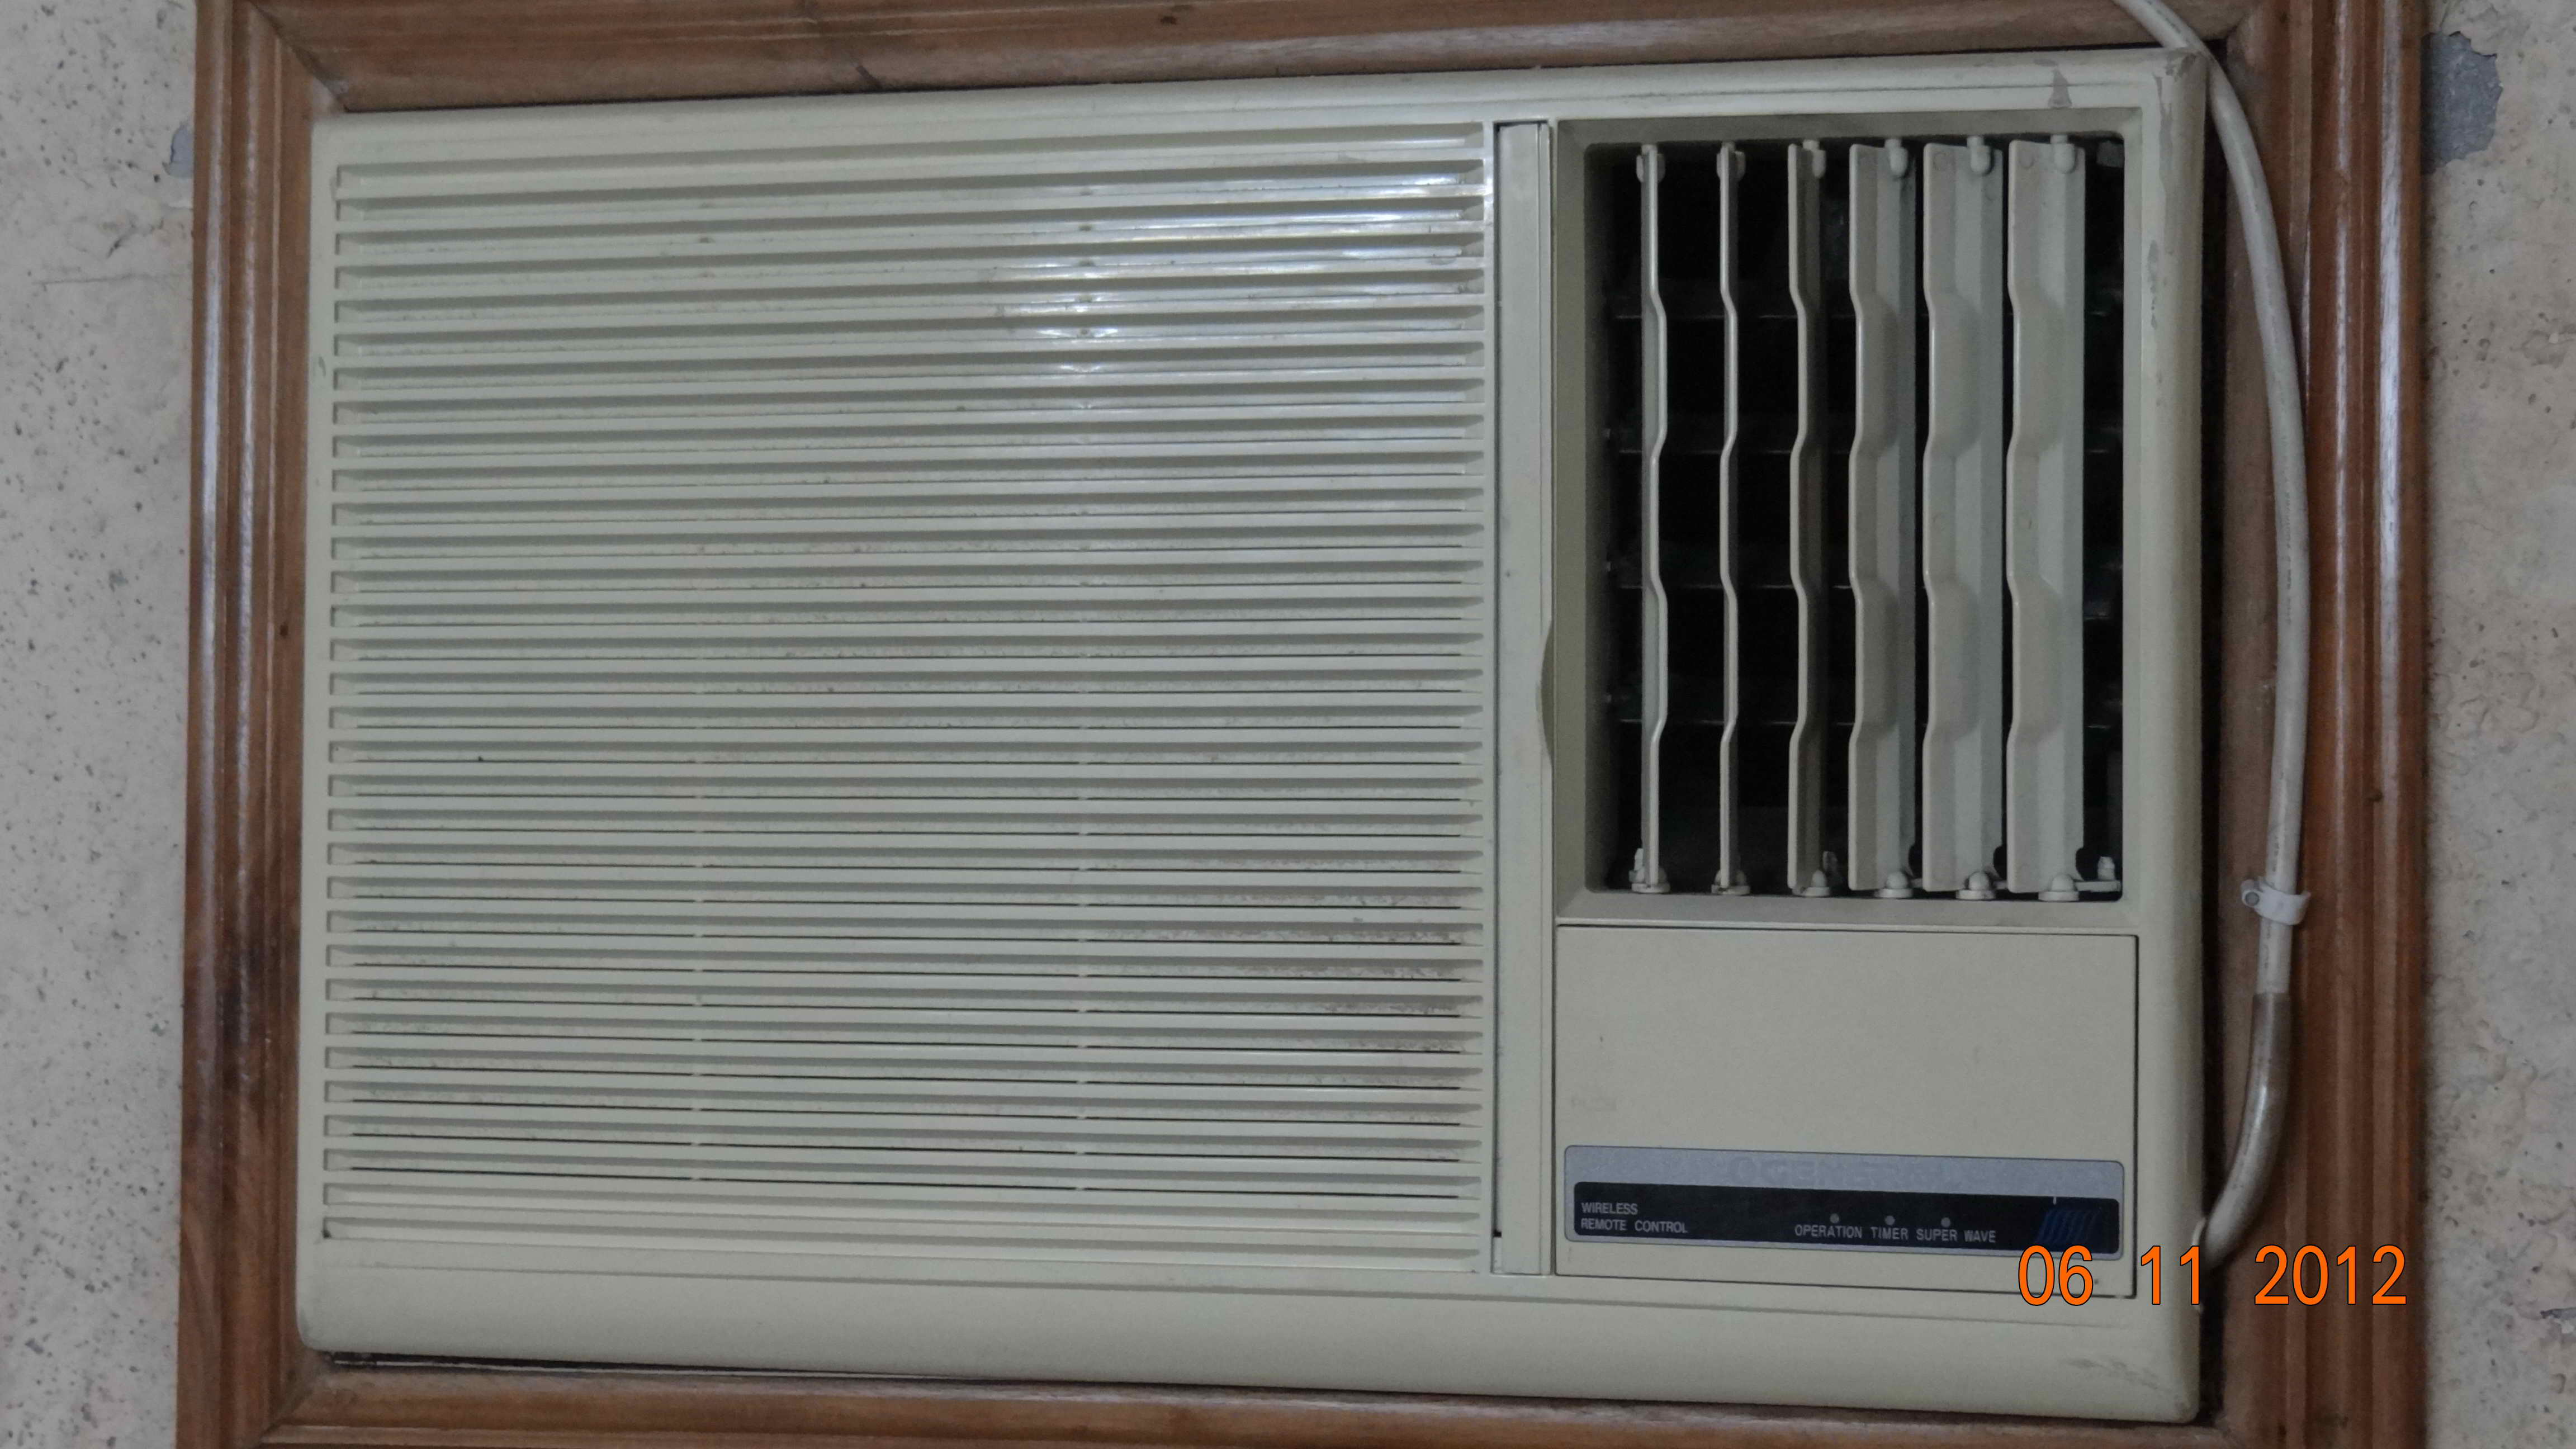 General Air Conditioner ClickBD large image 0 #B94F0F